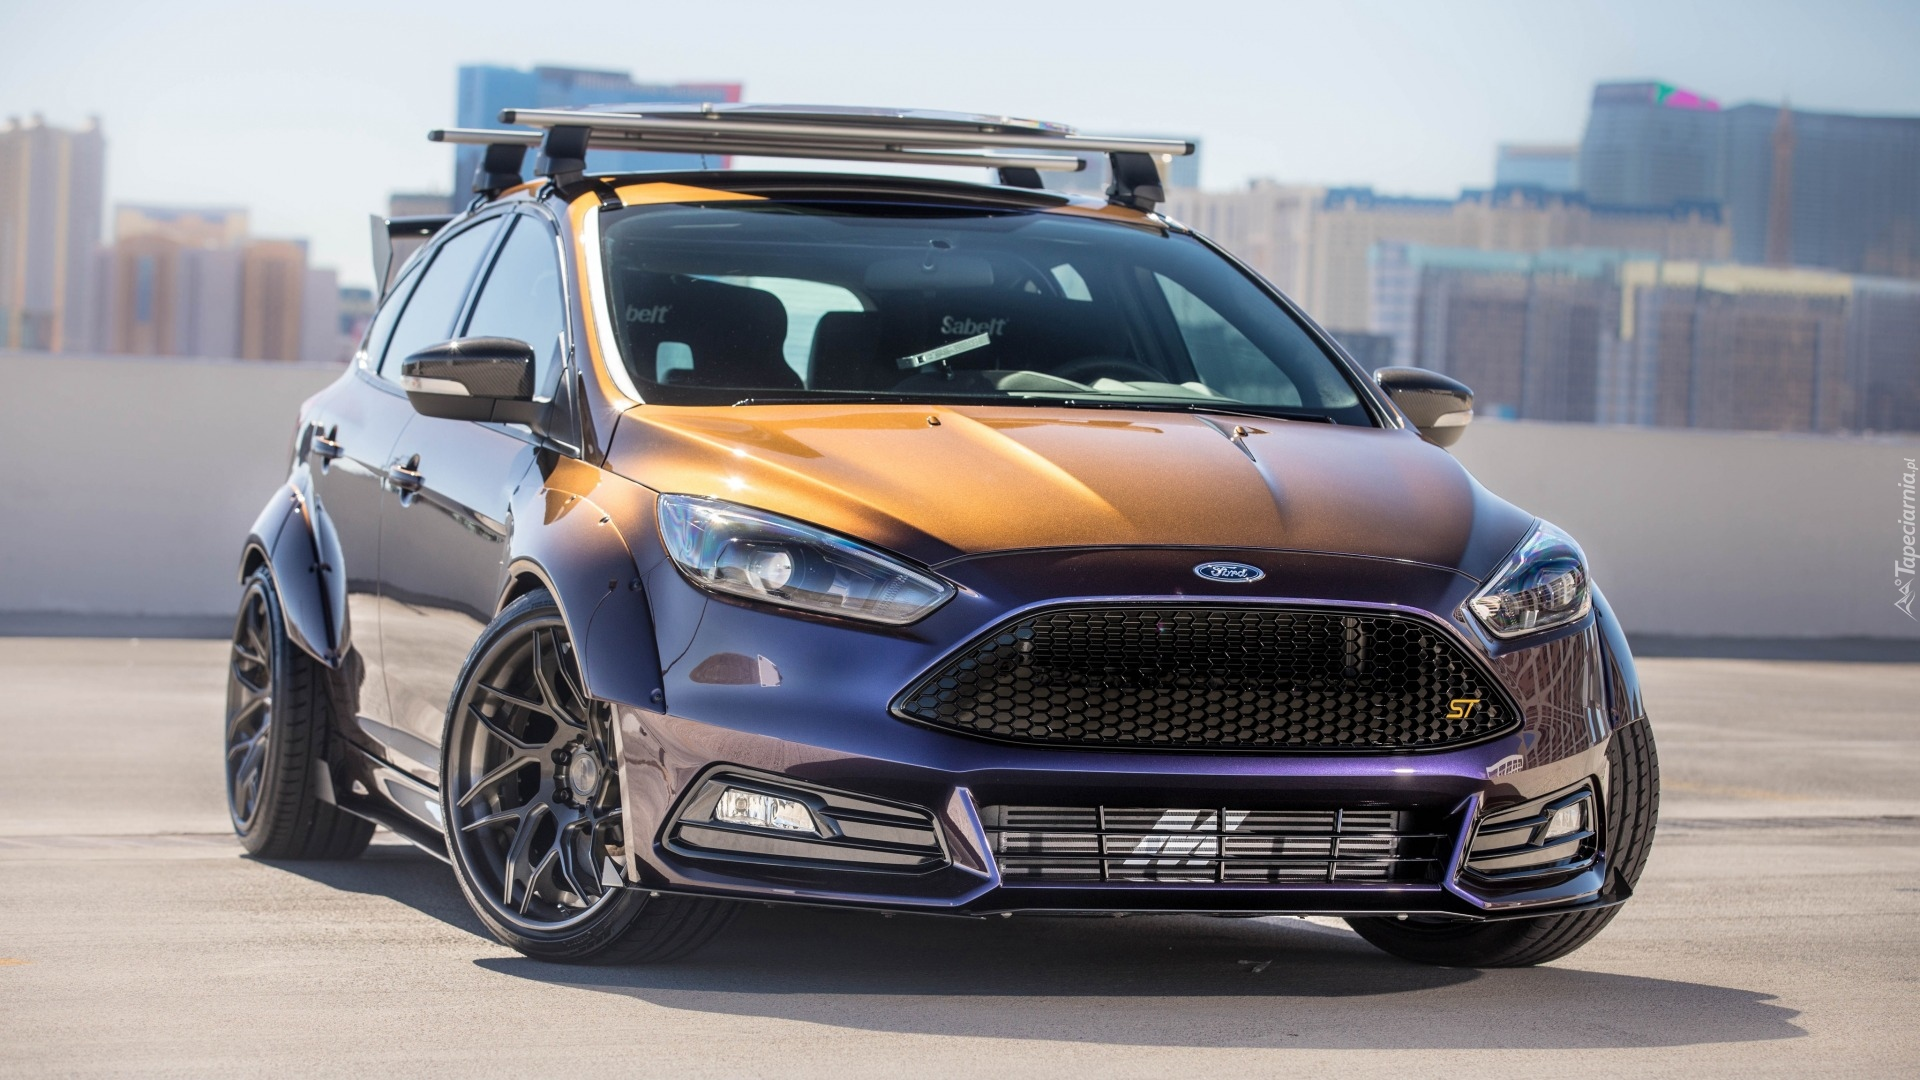 Ford Focus St By Blood Type Racing 2017